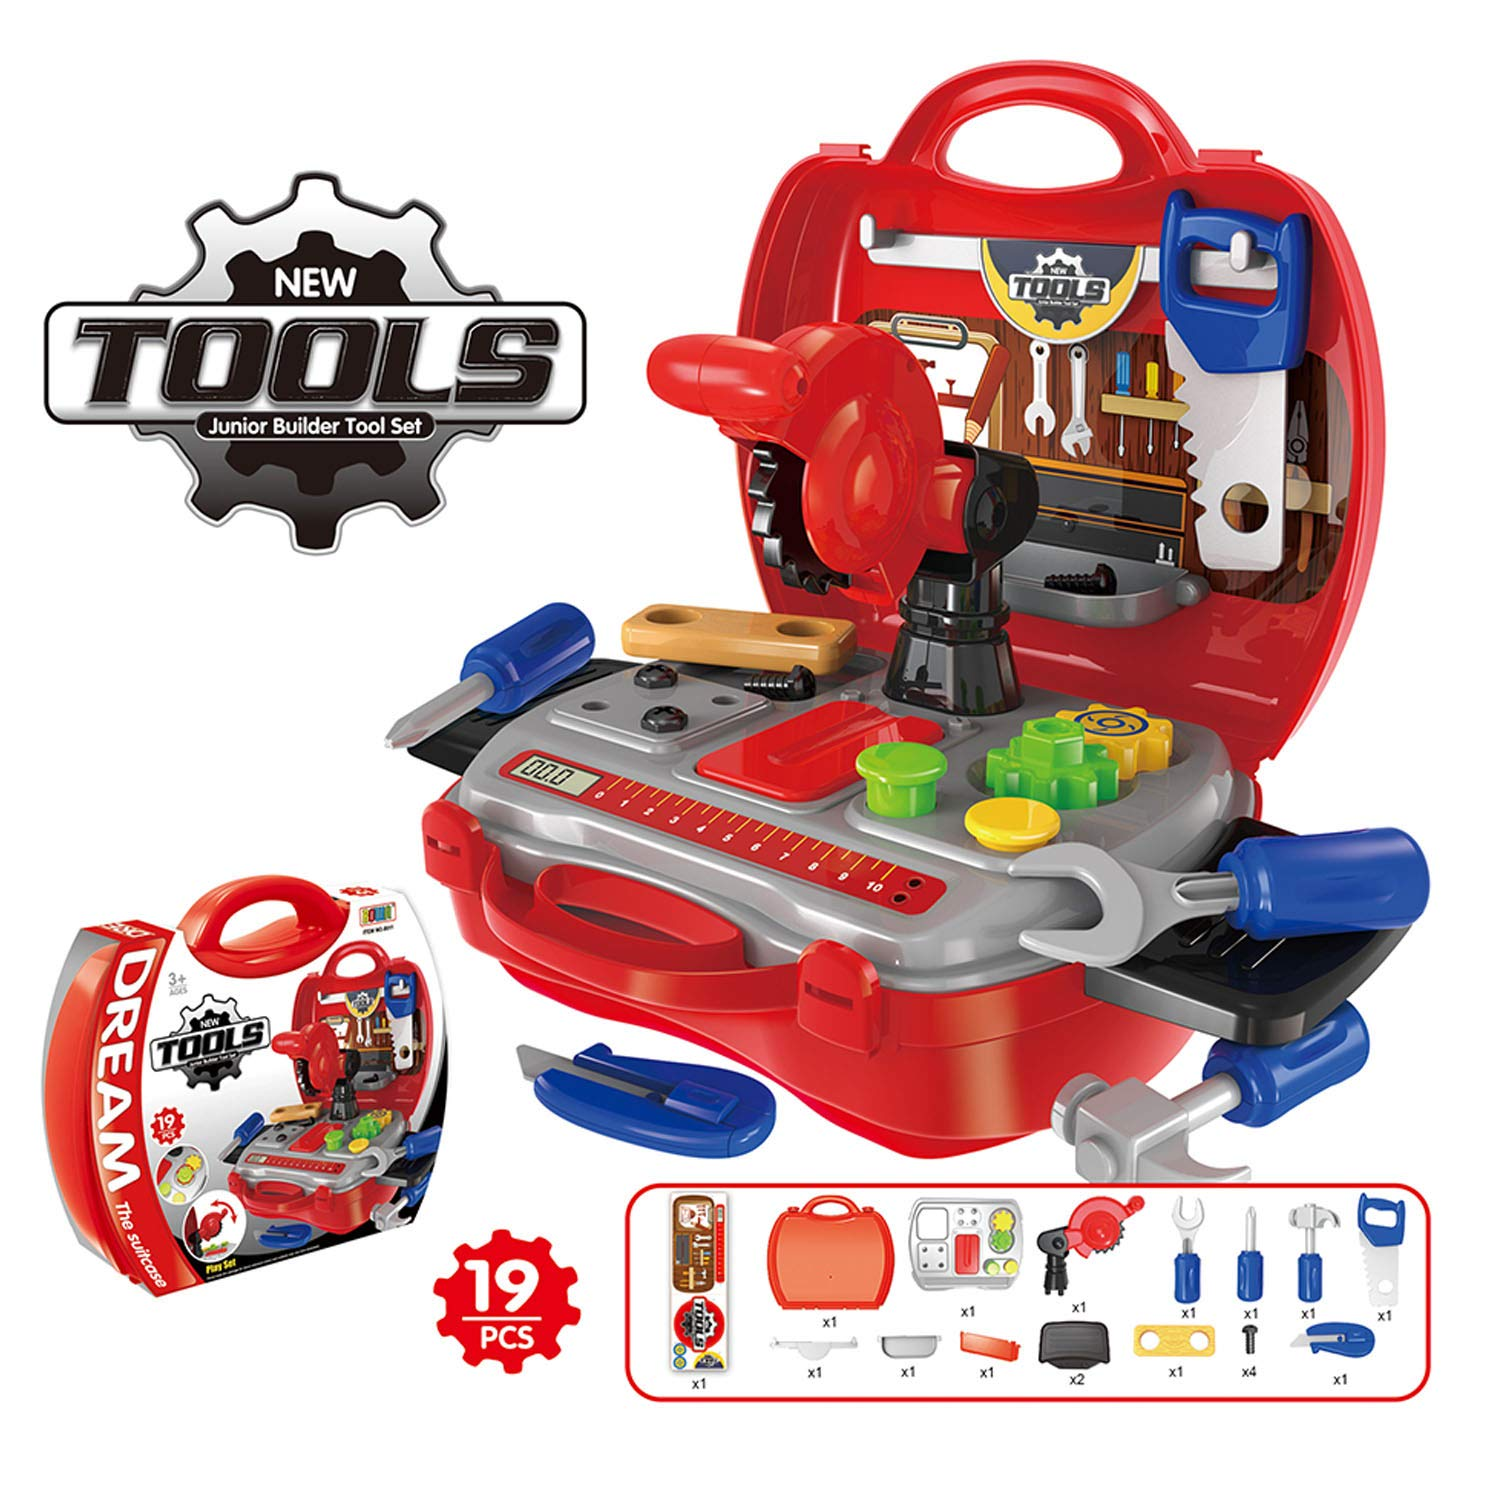 Snoky Kids Tools Set for Boys, Pretend Play Toys for Toddlers New Toys for Boys Girls Age 3-10 Unique Gifts for 3-10 Year Old Boys Girls Red SKTS2